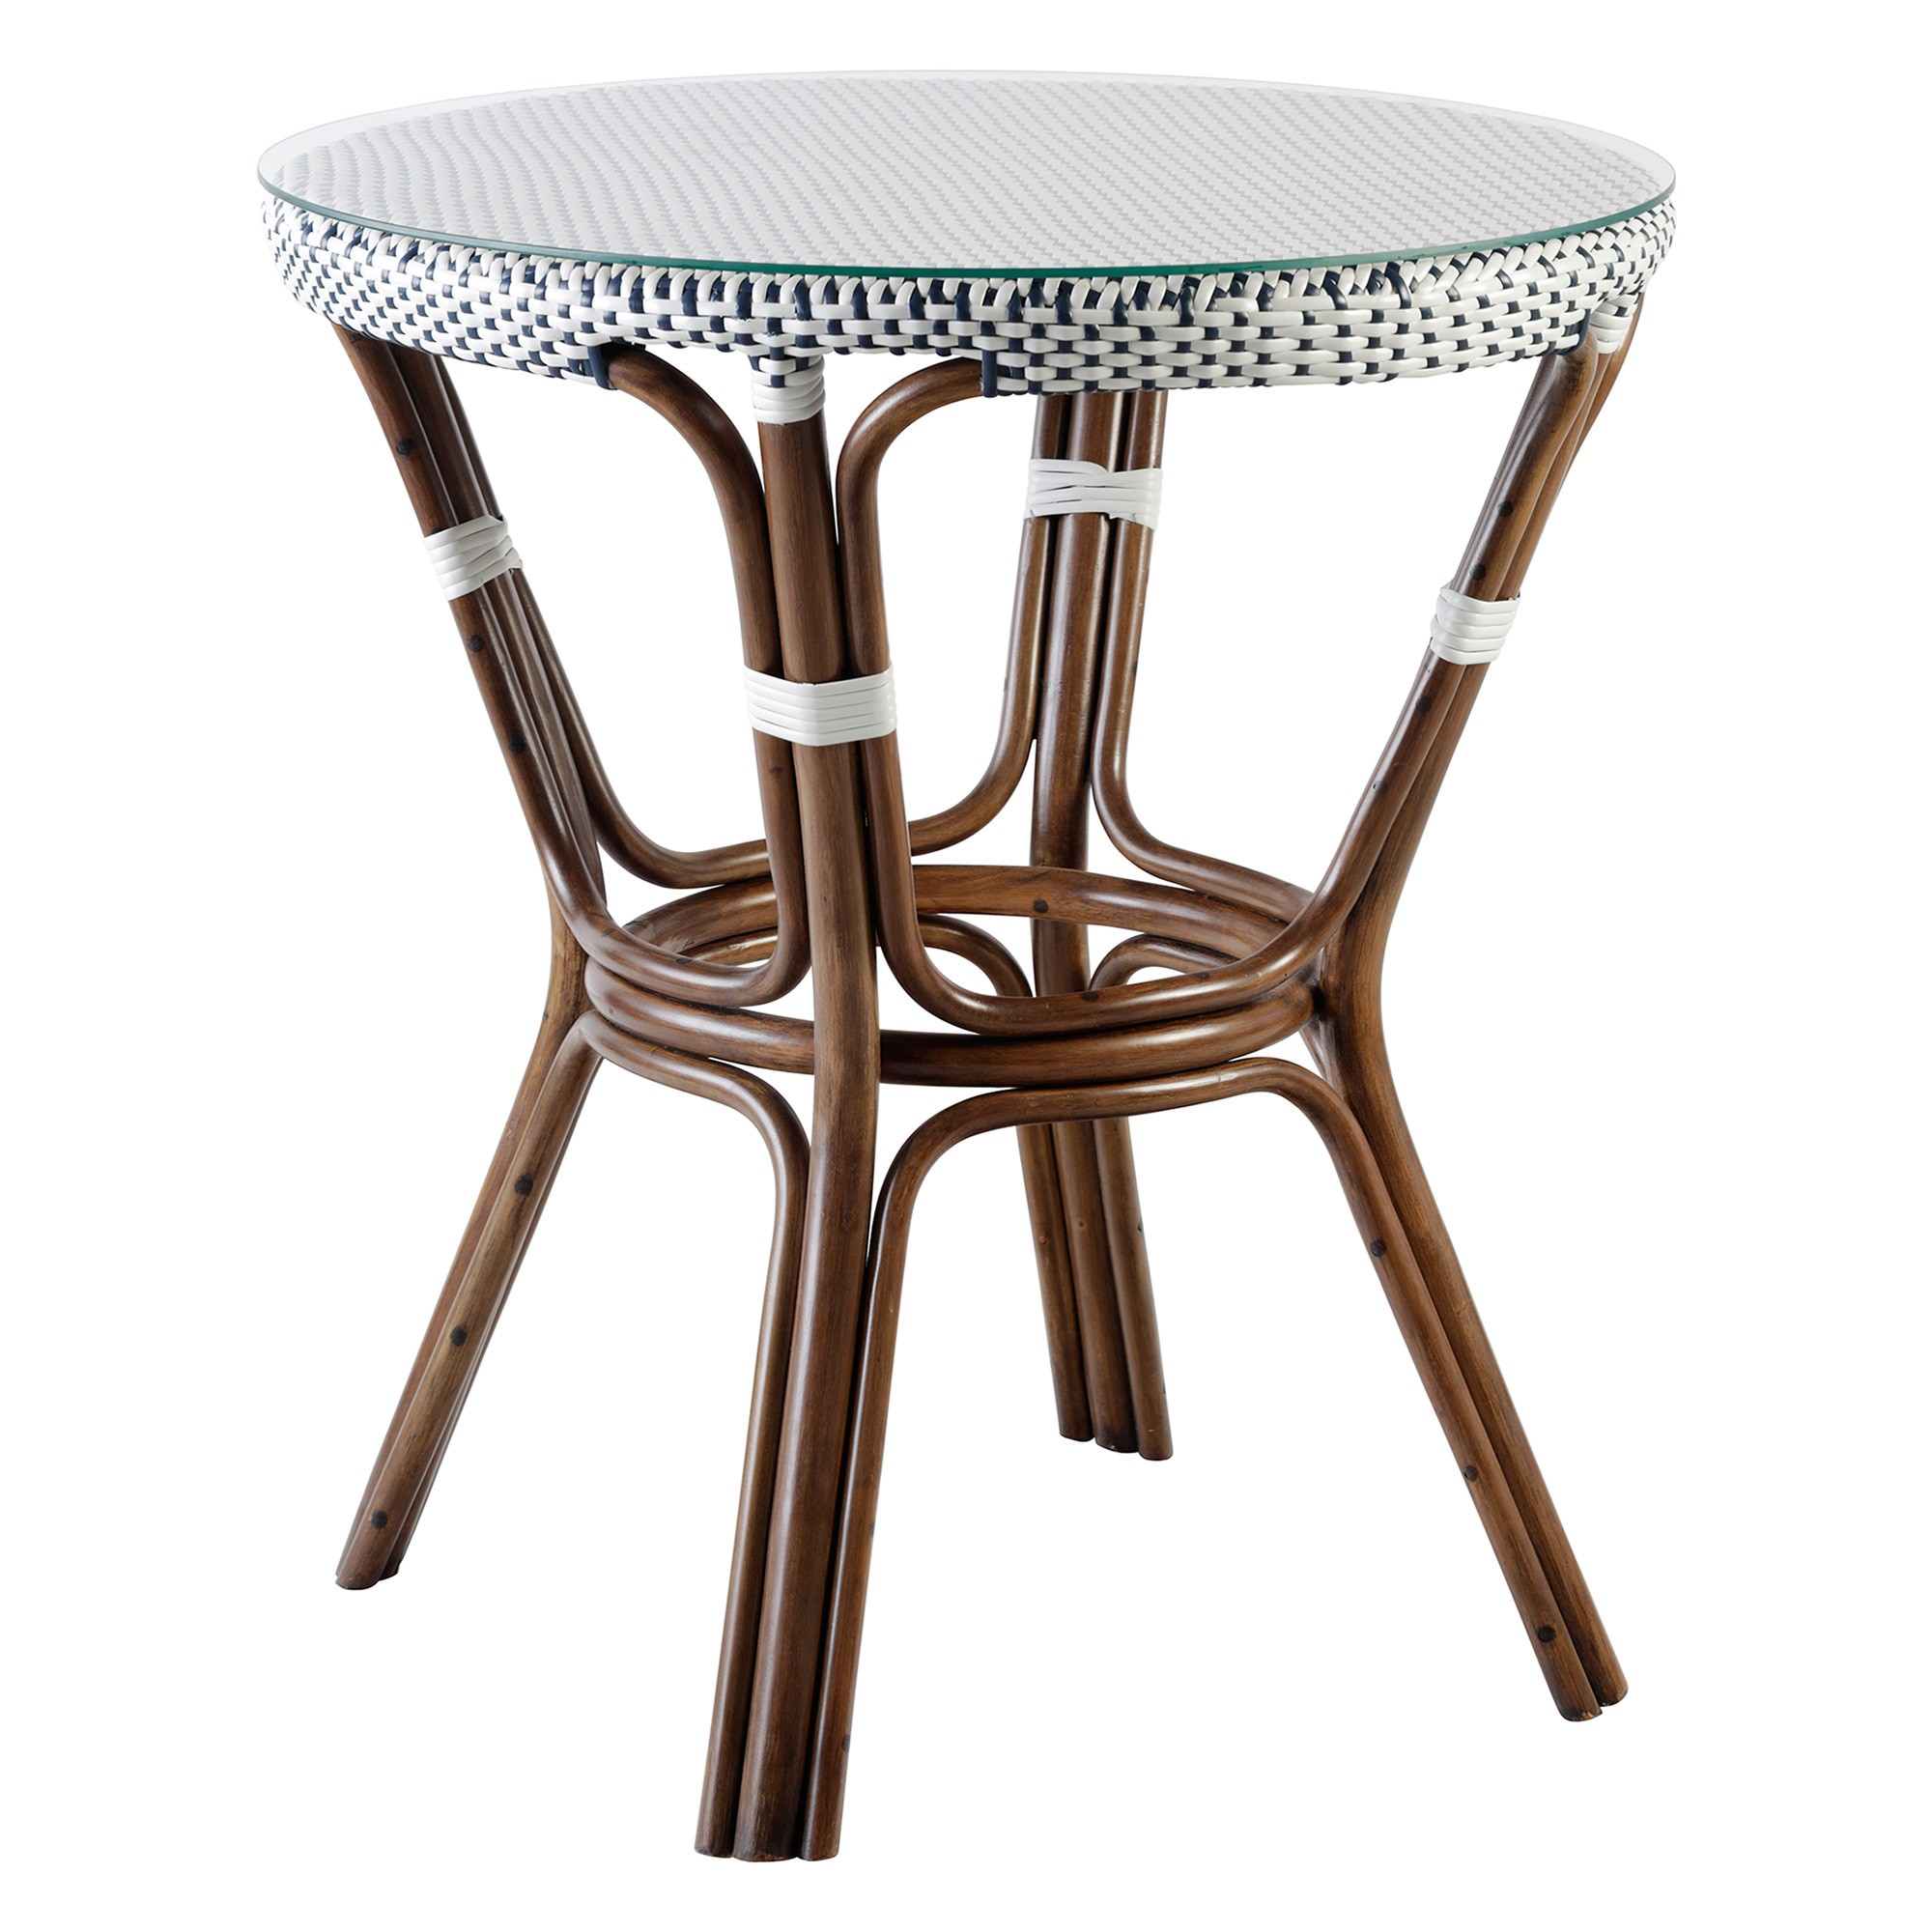 Kingsley Rattan Round Bistro Dining Table, 70cm